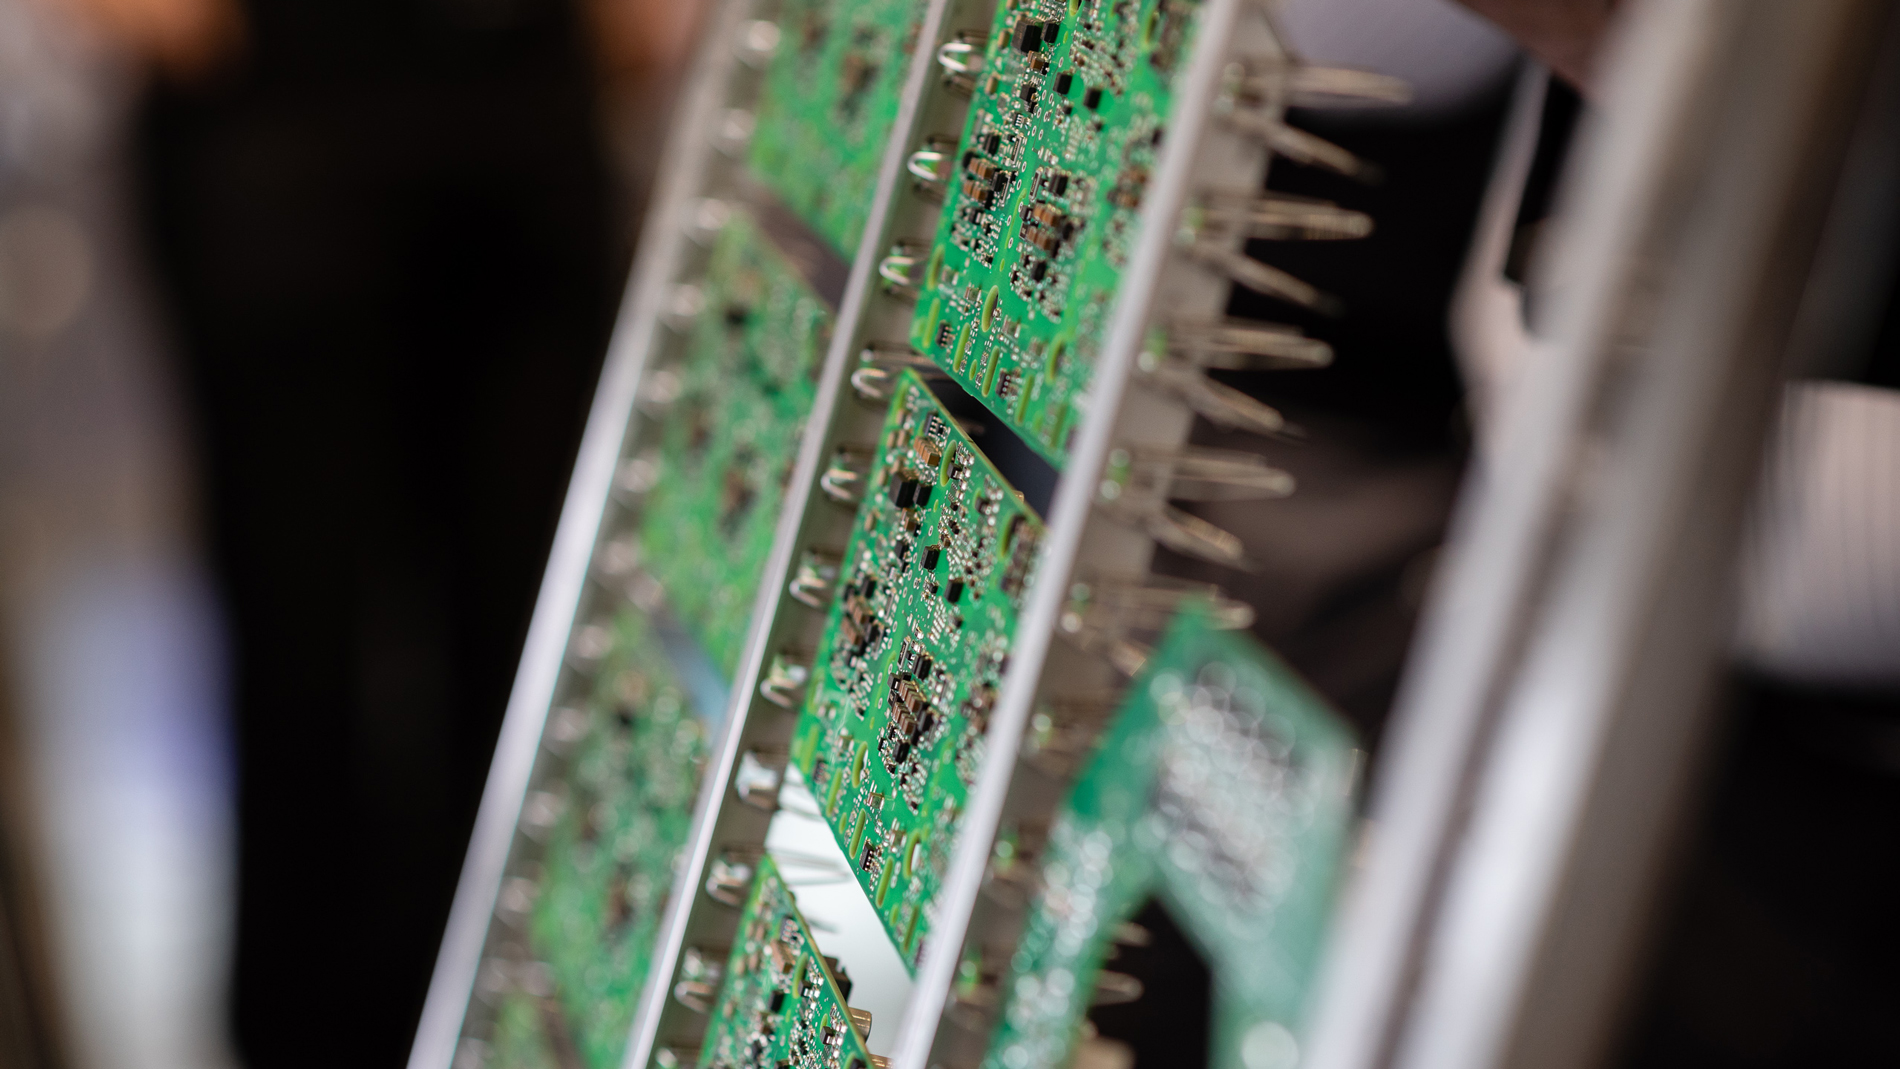 Printed circuit boards in a transport frame for PCB cleaning